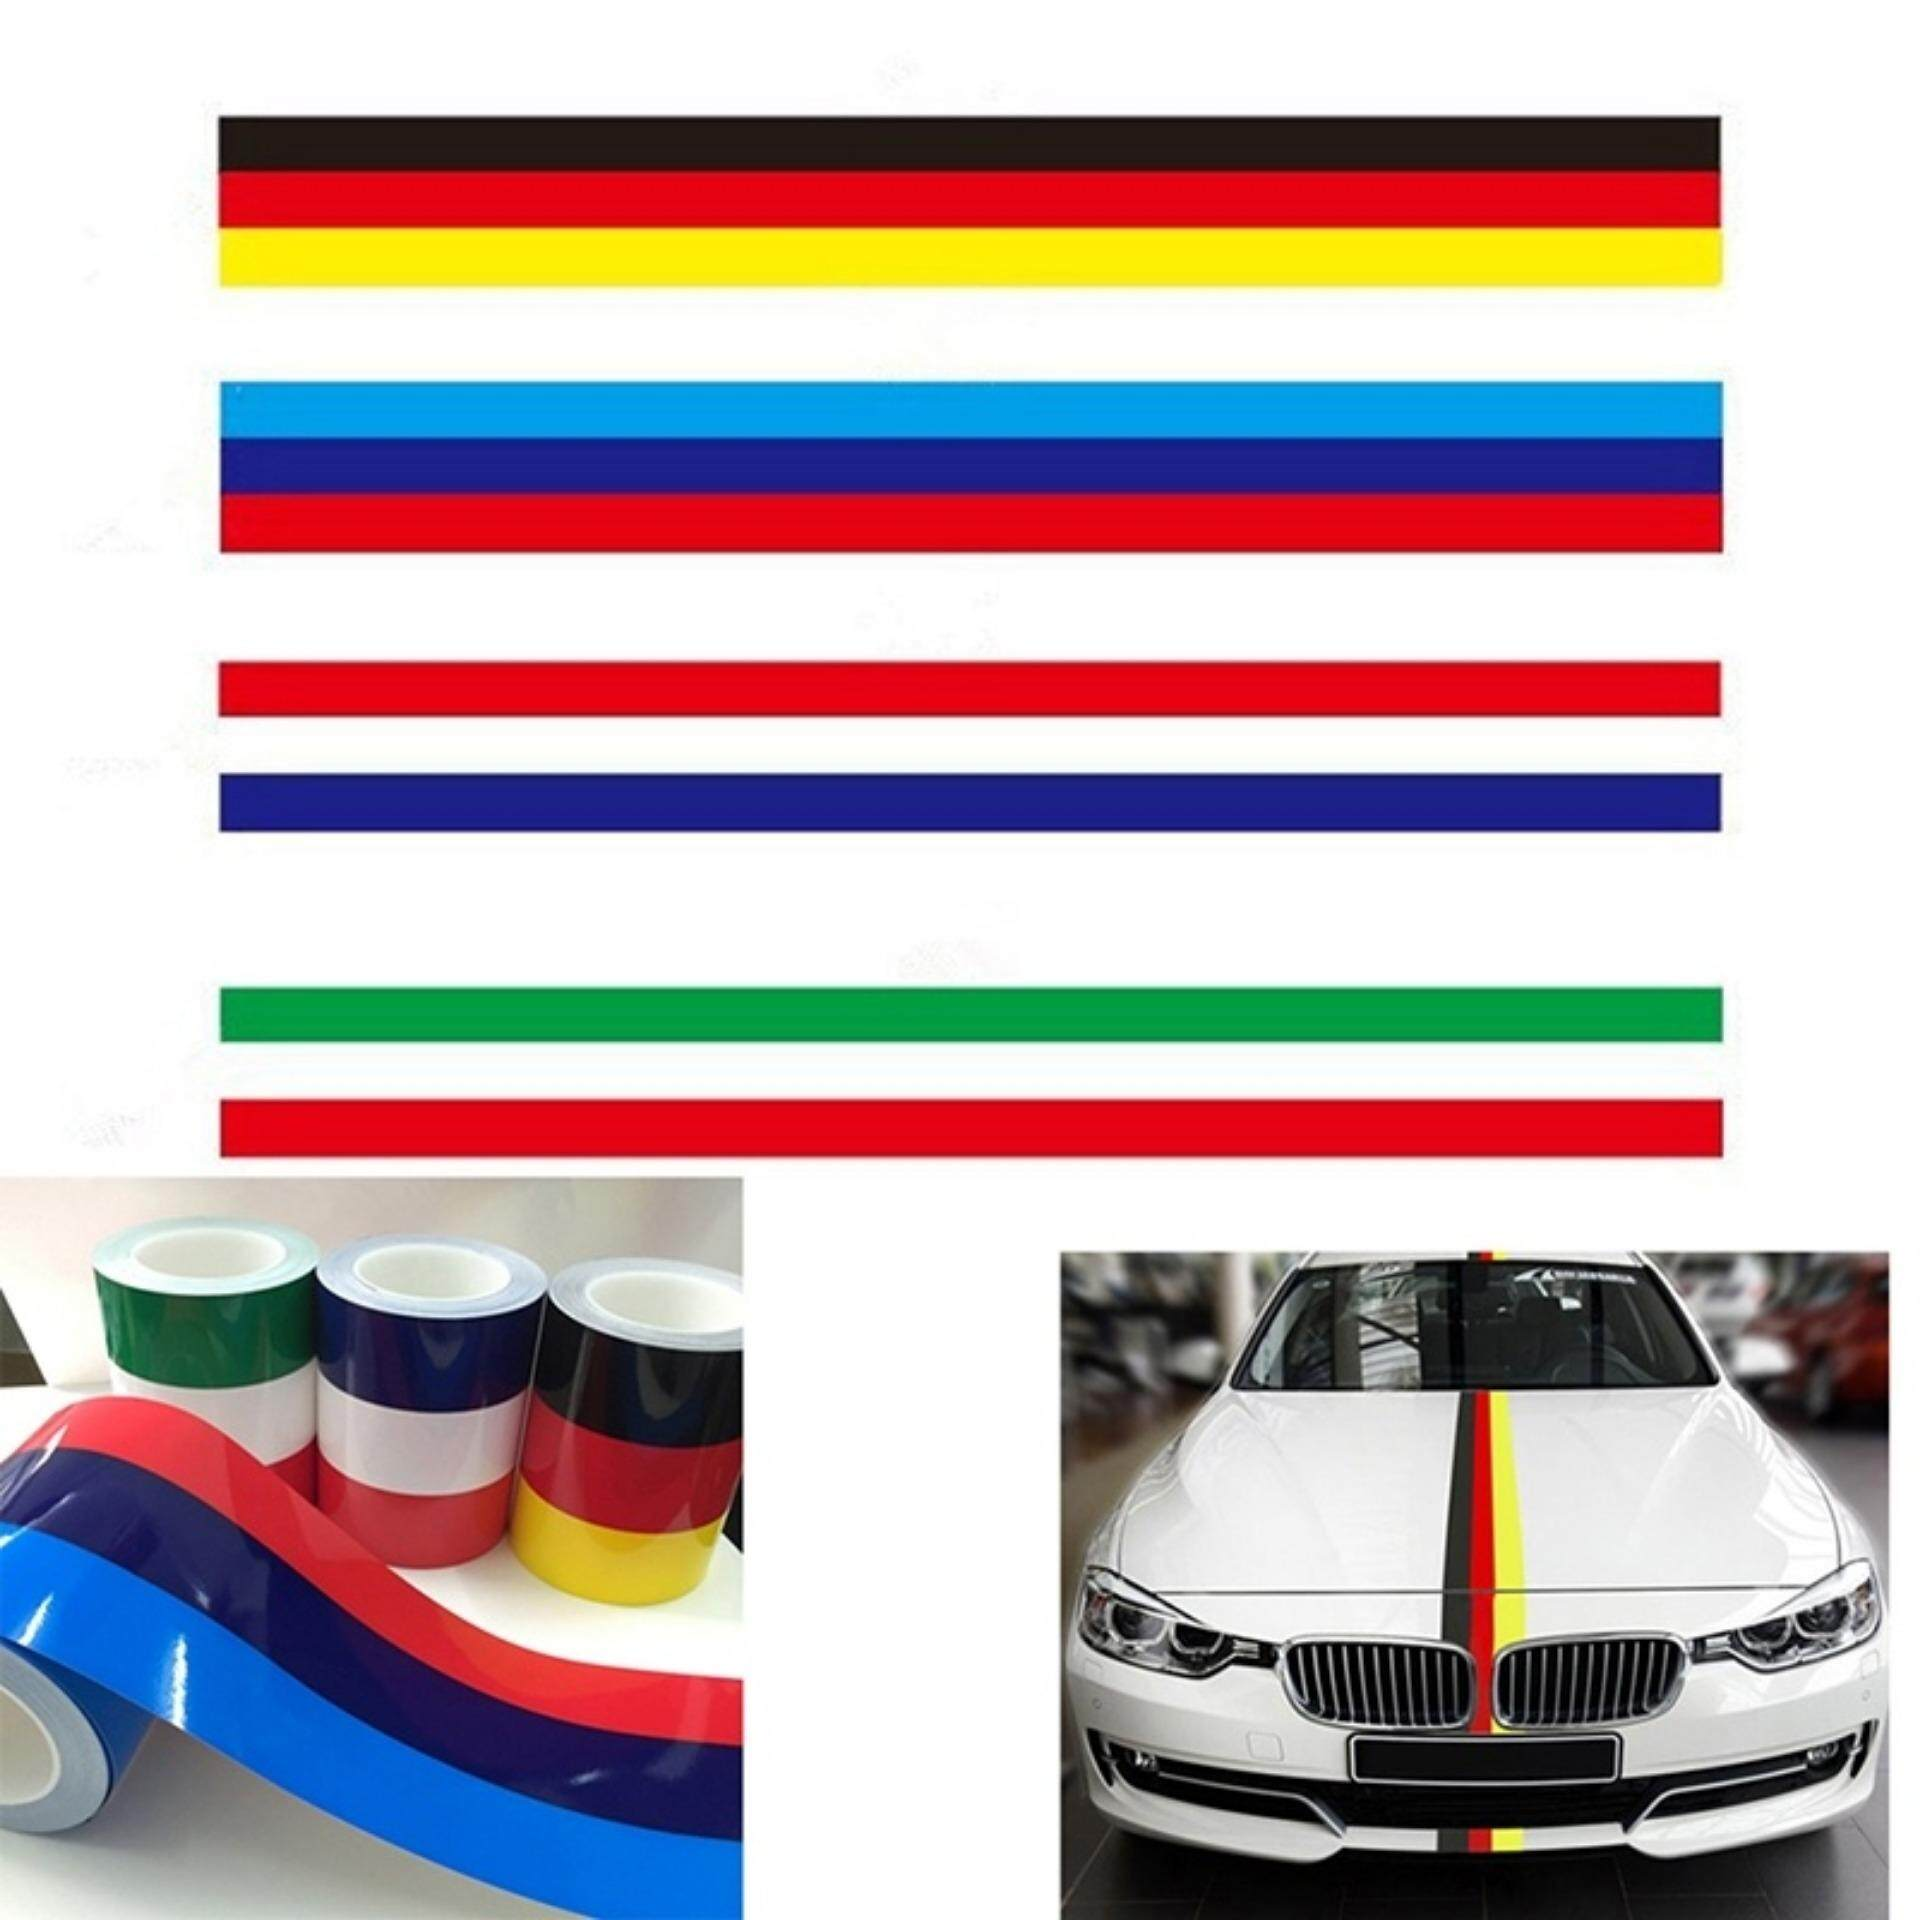 Grill Pelindung Mobil Termurah Handle Motor Diy For Bmw Flag Auto Waist Line Hood Sicker Decal Car Stickers 1m France